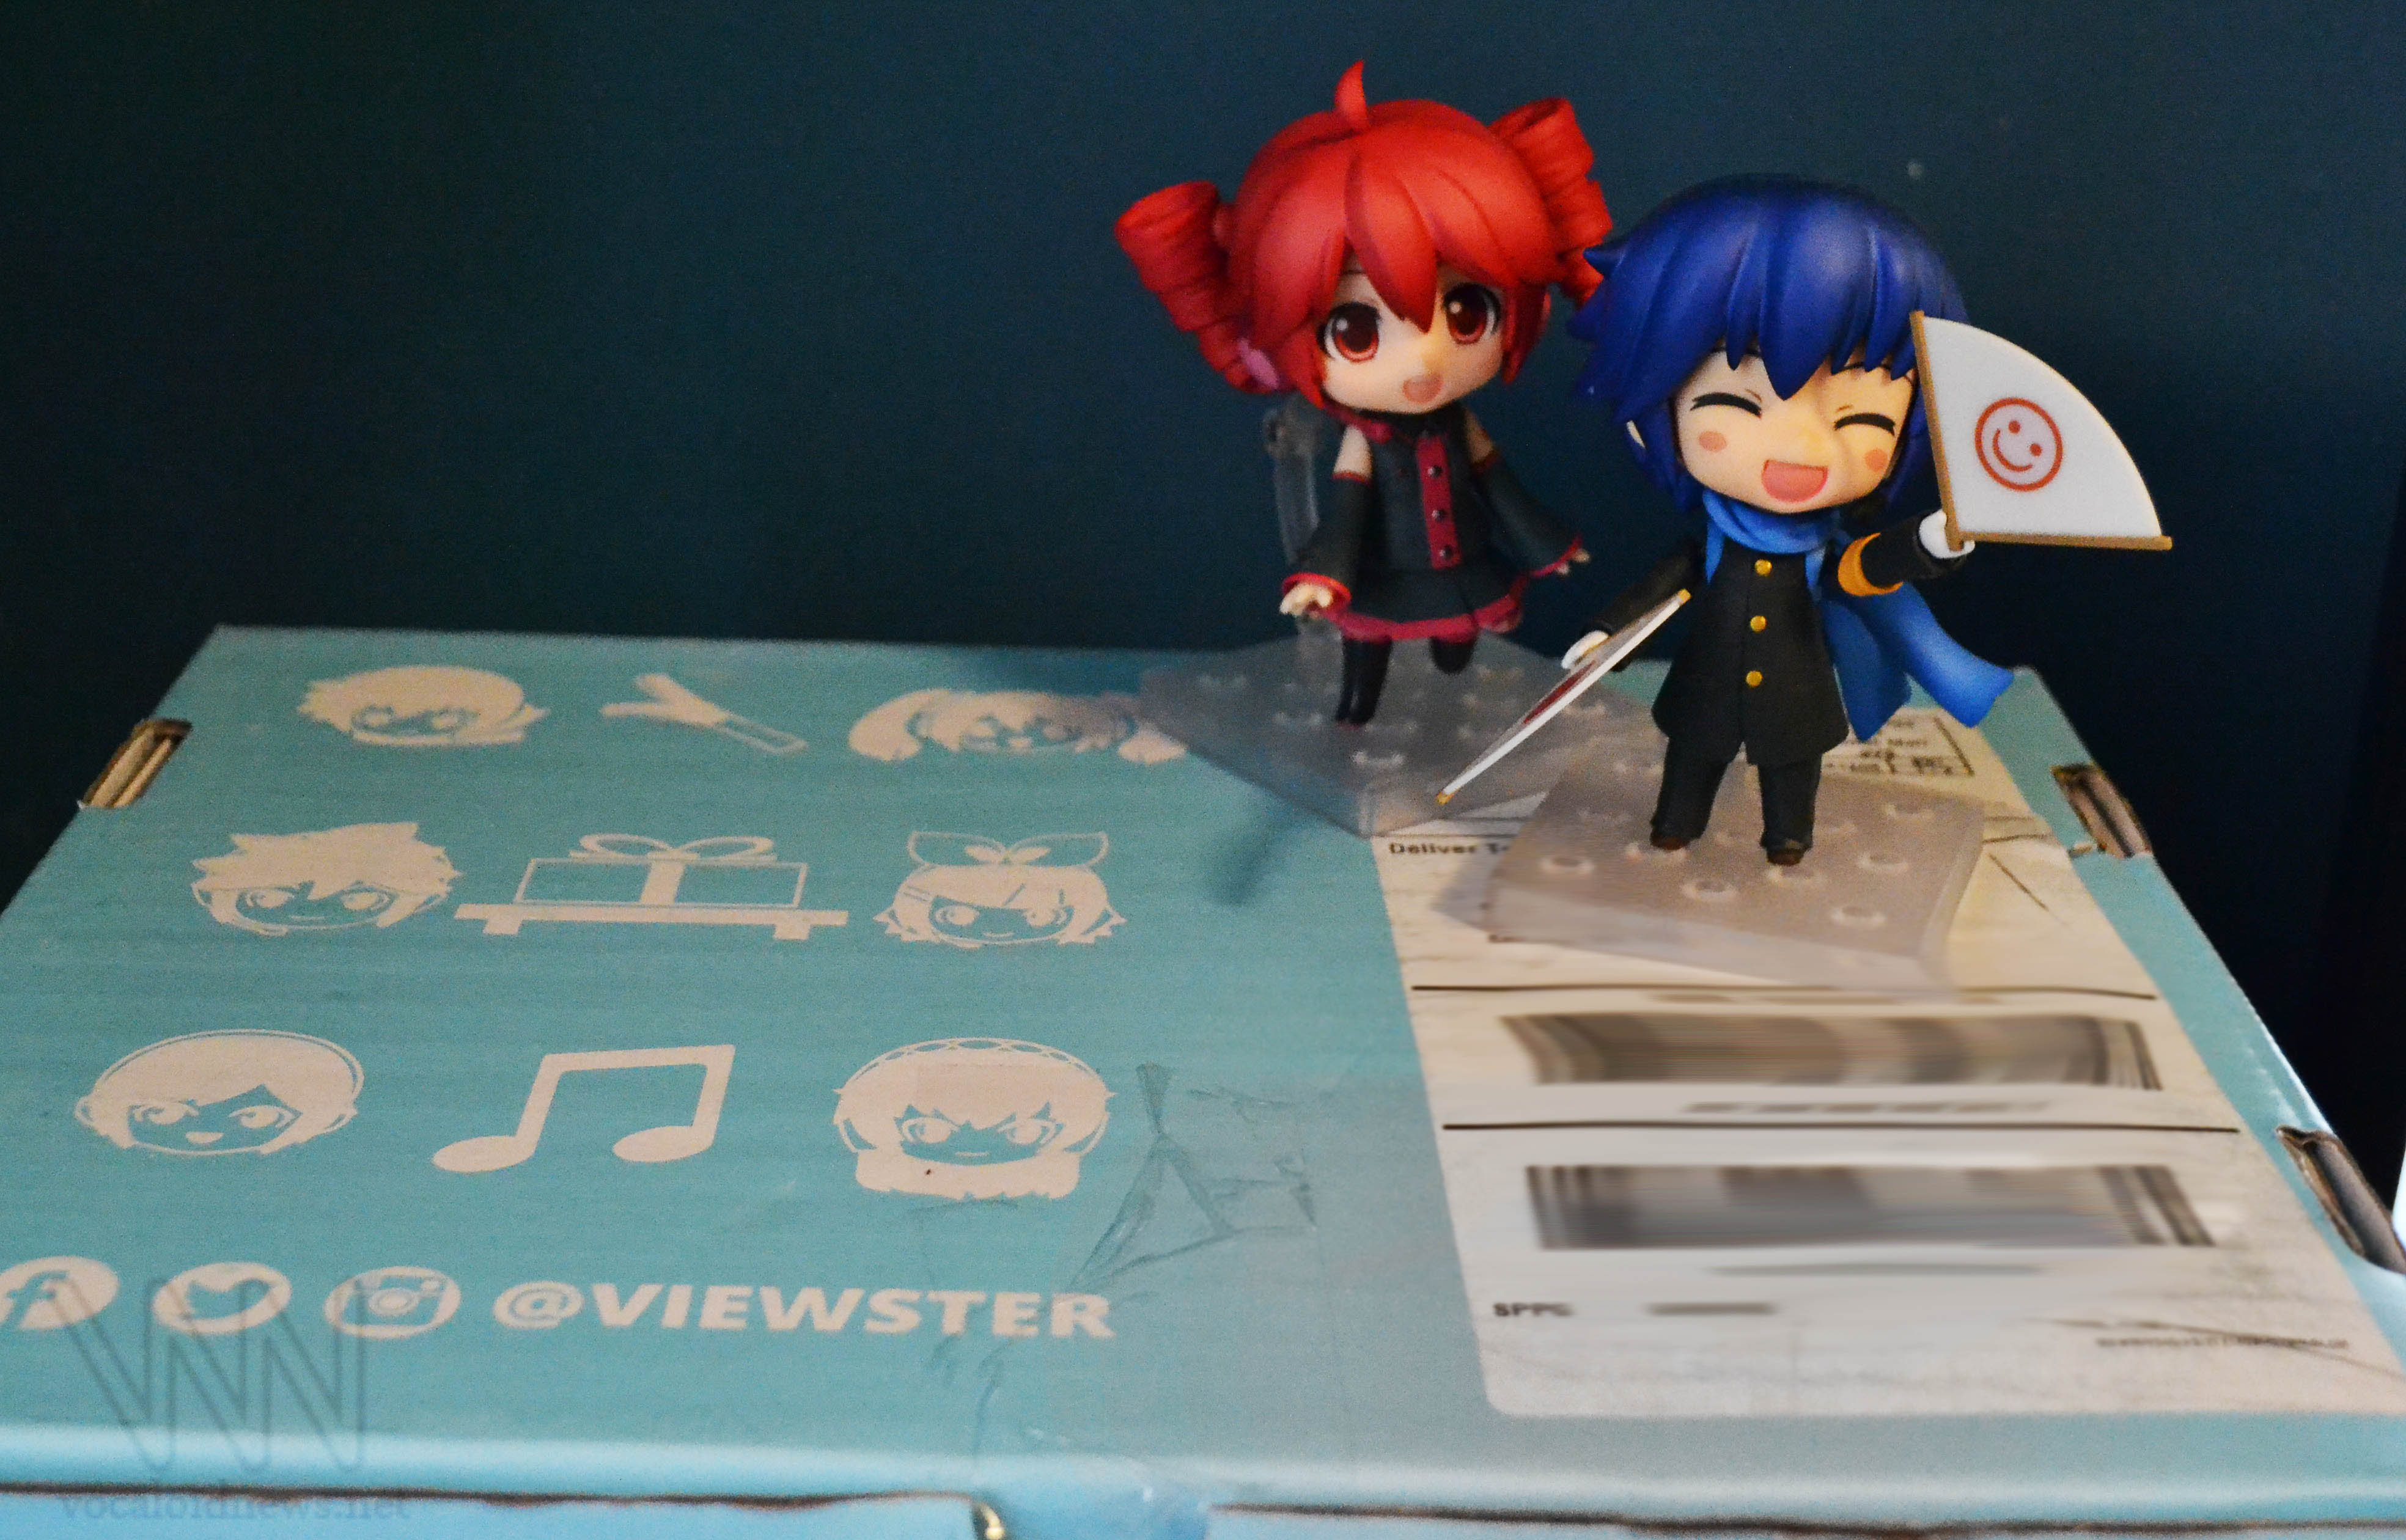 The box itself. (Nendos are for scale and an increased level of cuteness)